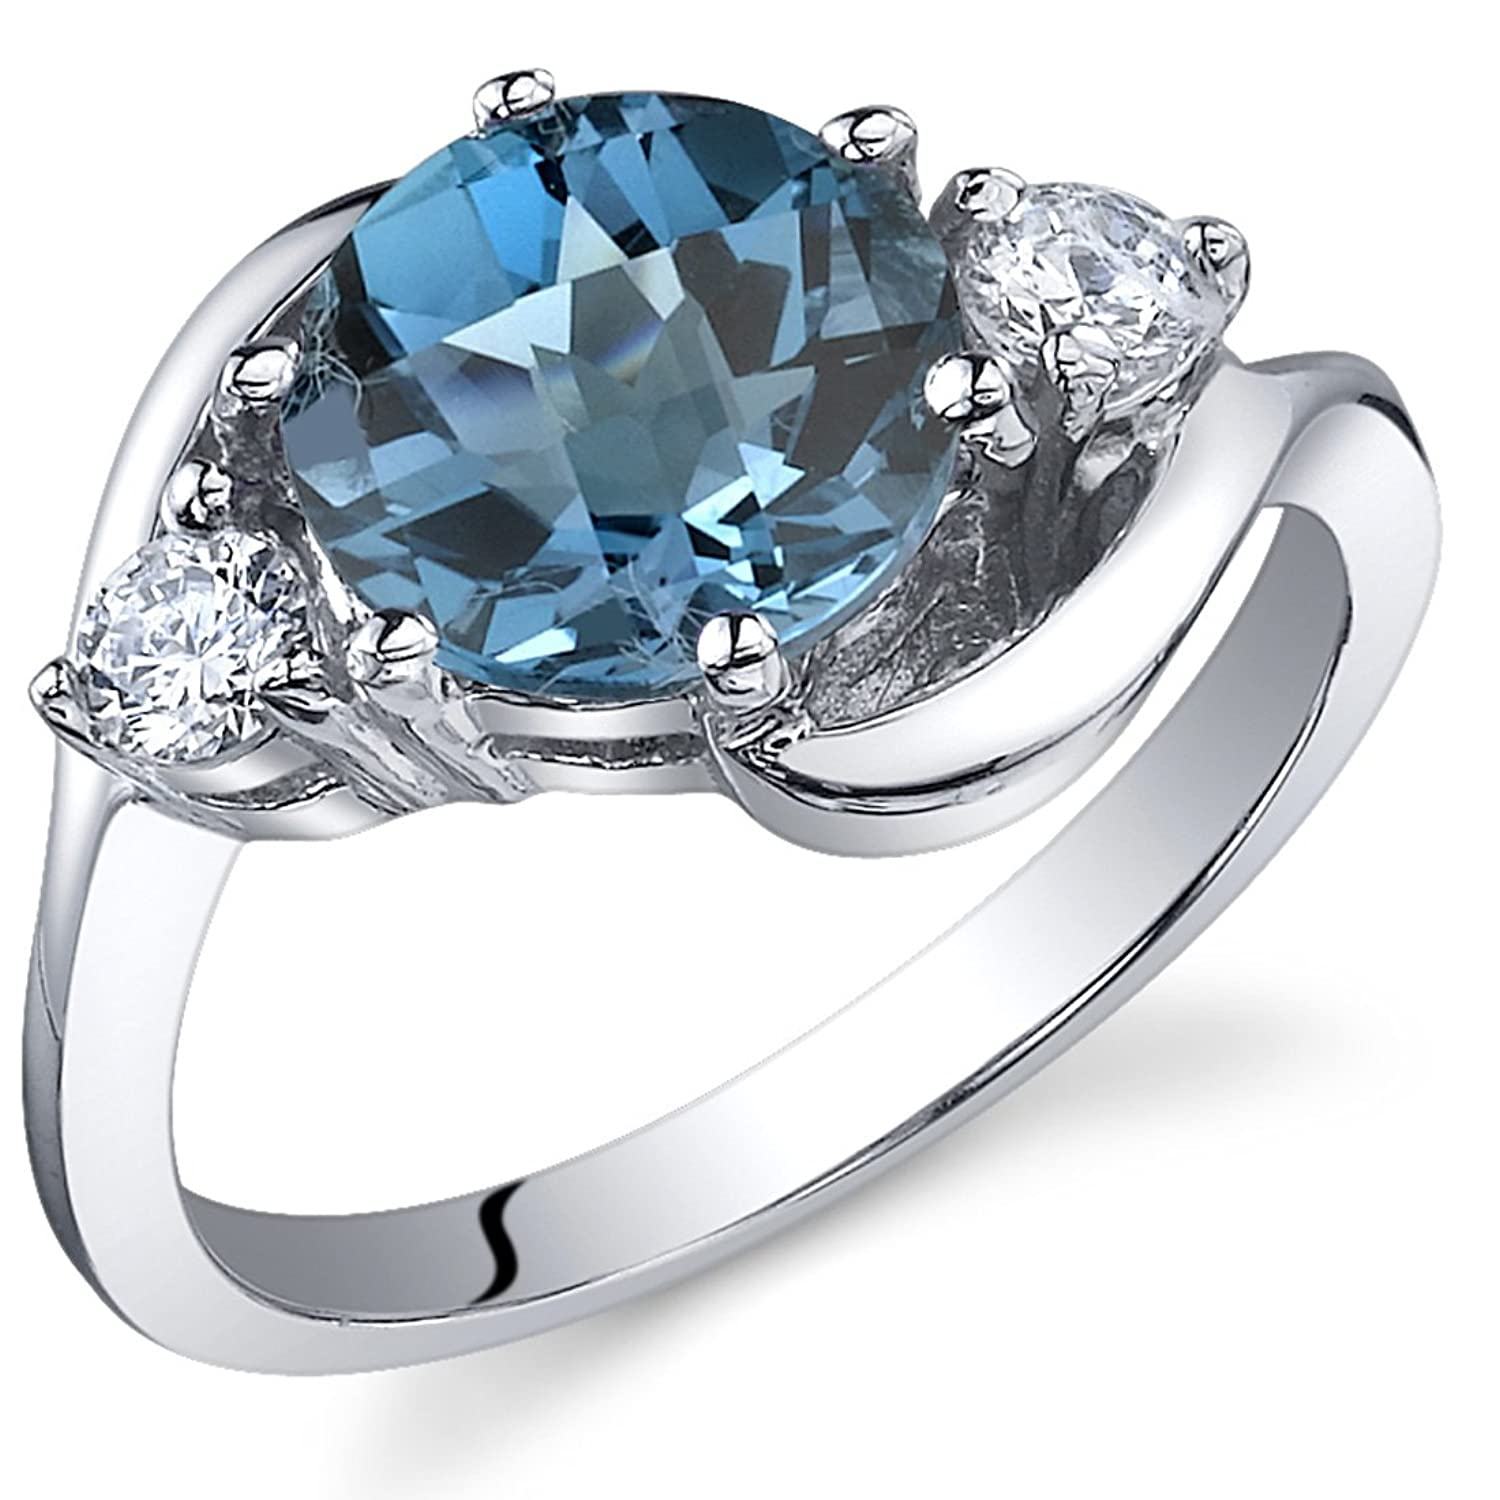 rings font b buy wedding ring indonesia blue cz platinum royal popular stone black zirconium set new zirconia cheap